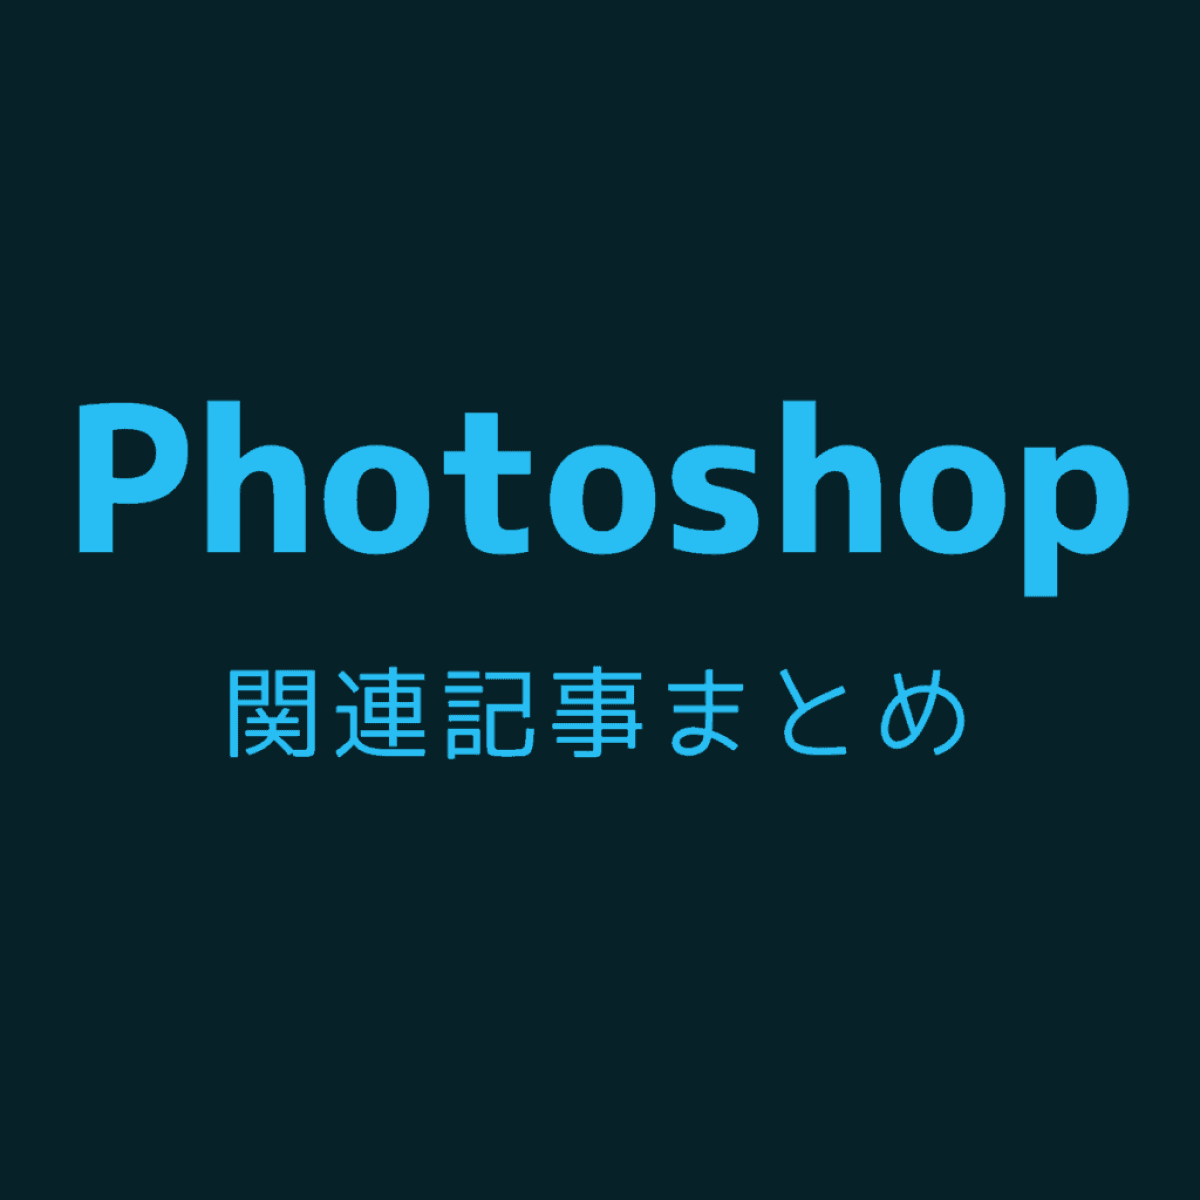 photoshop-summary-article